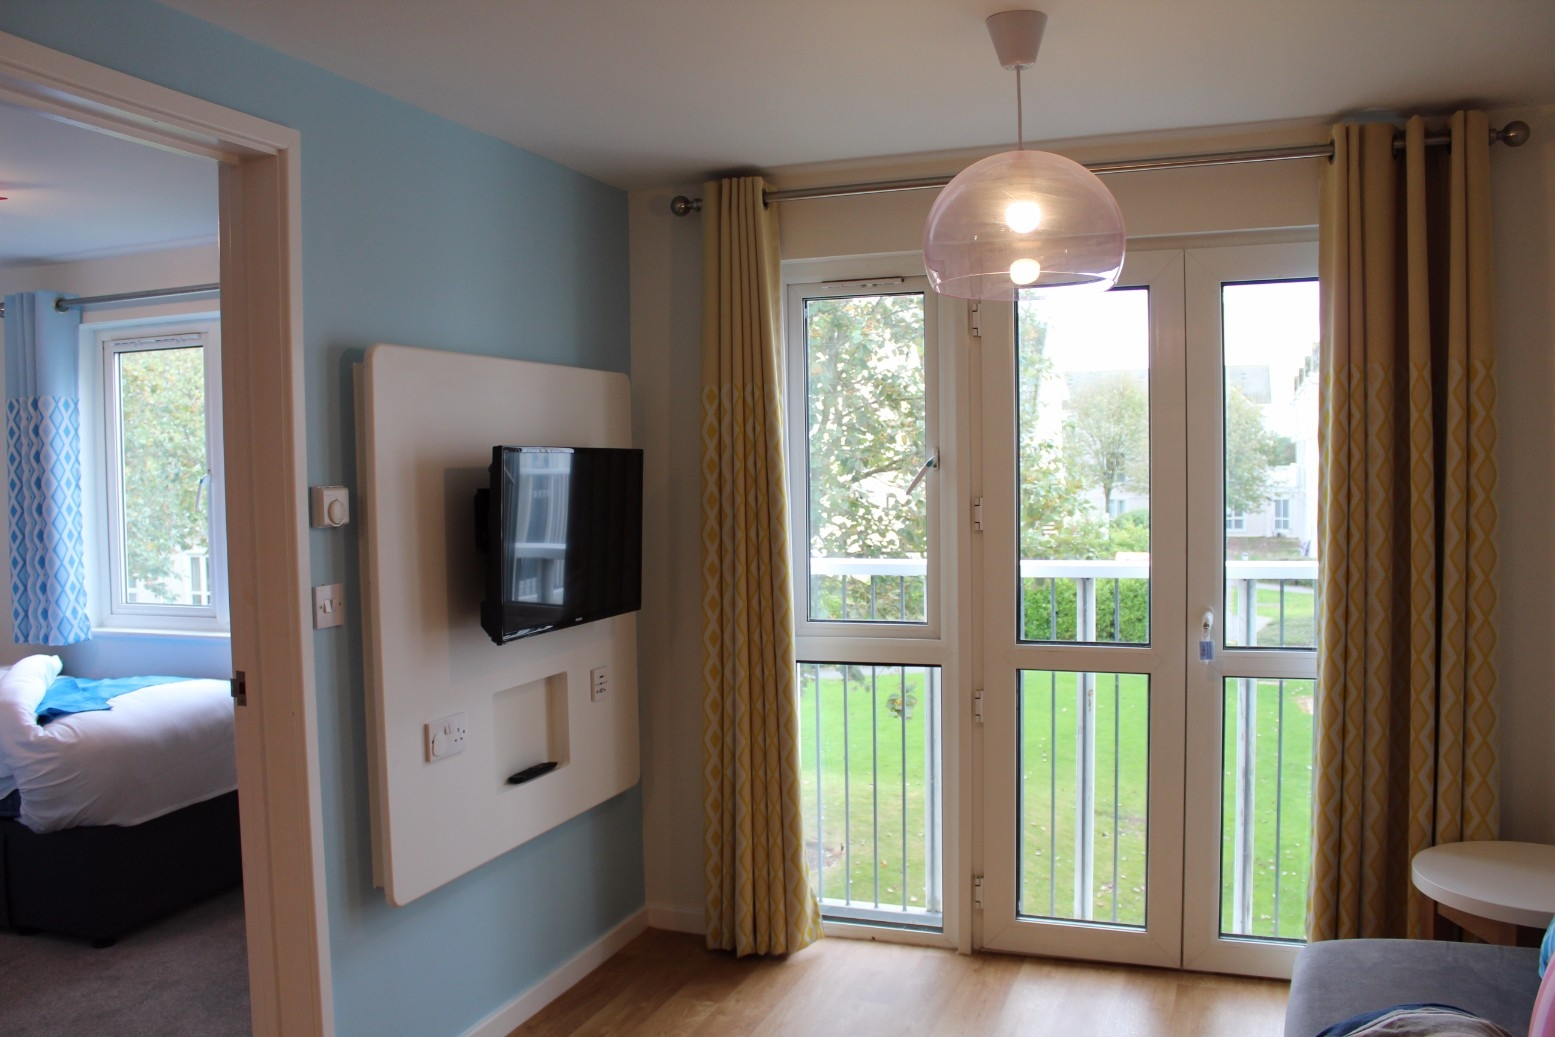 Butlin's Fairground Apartments Skegness - Review (11)